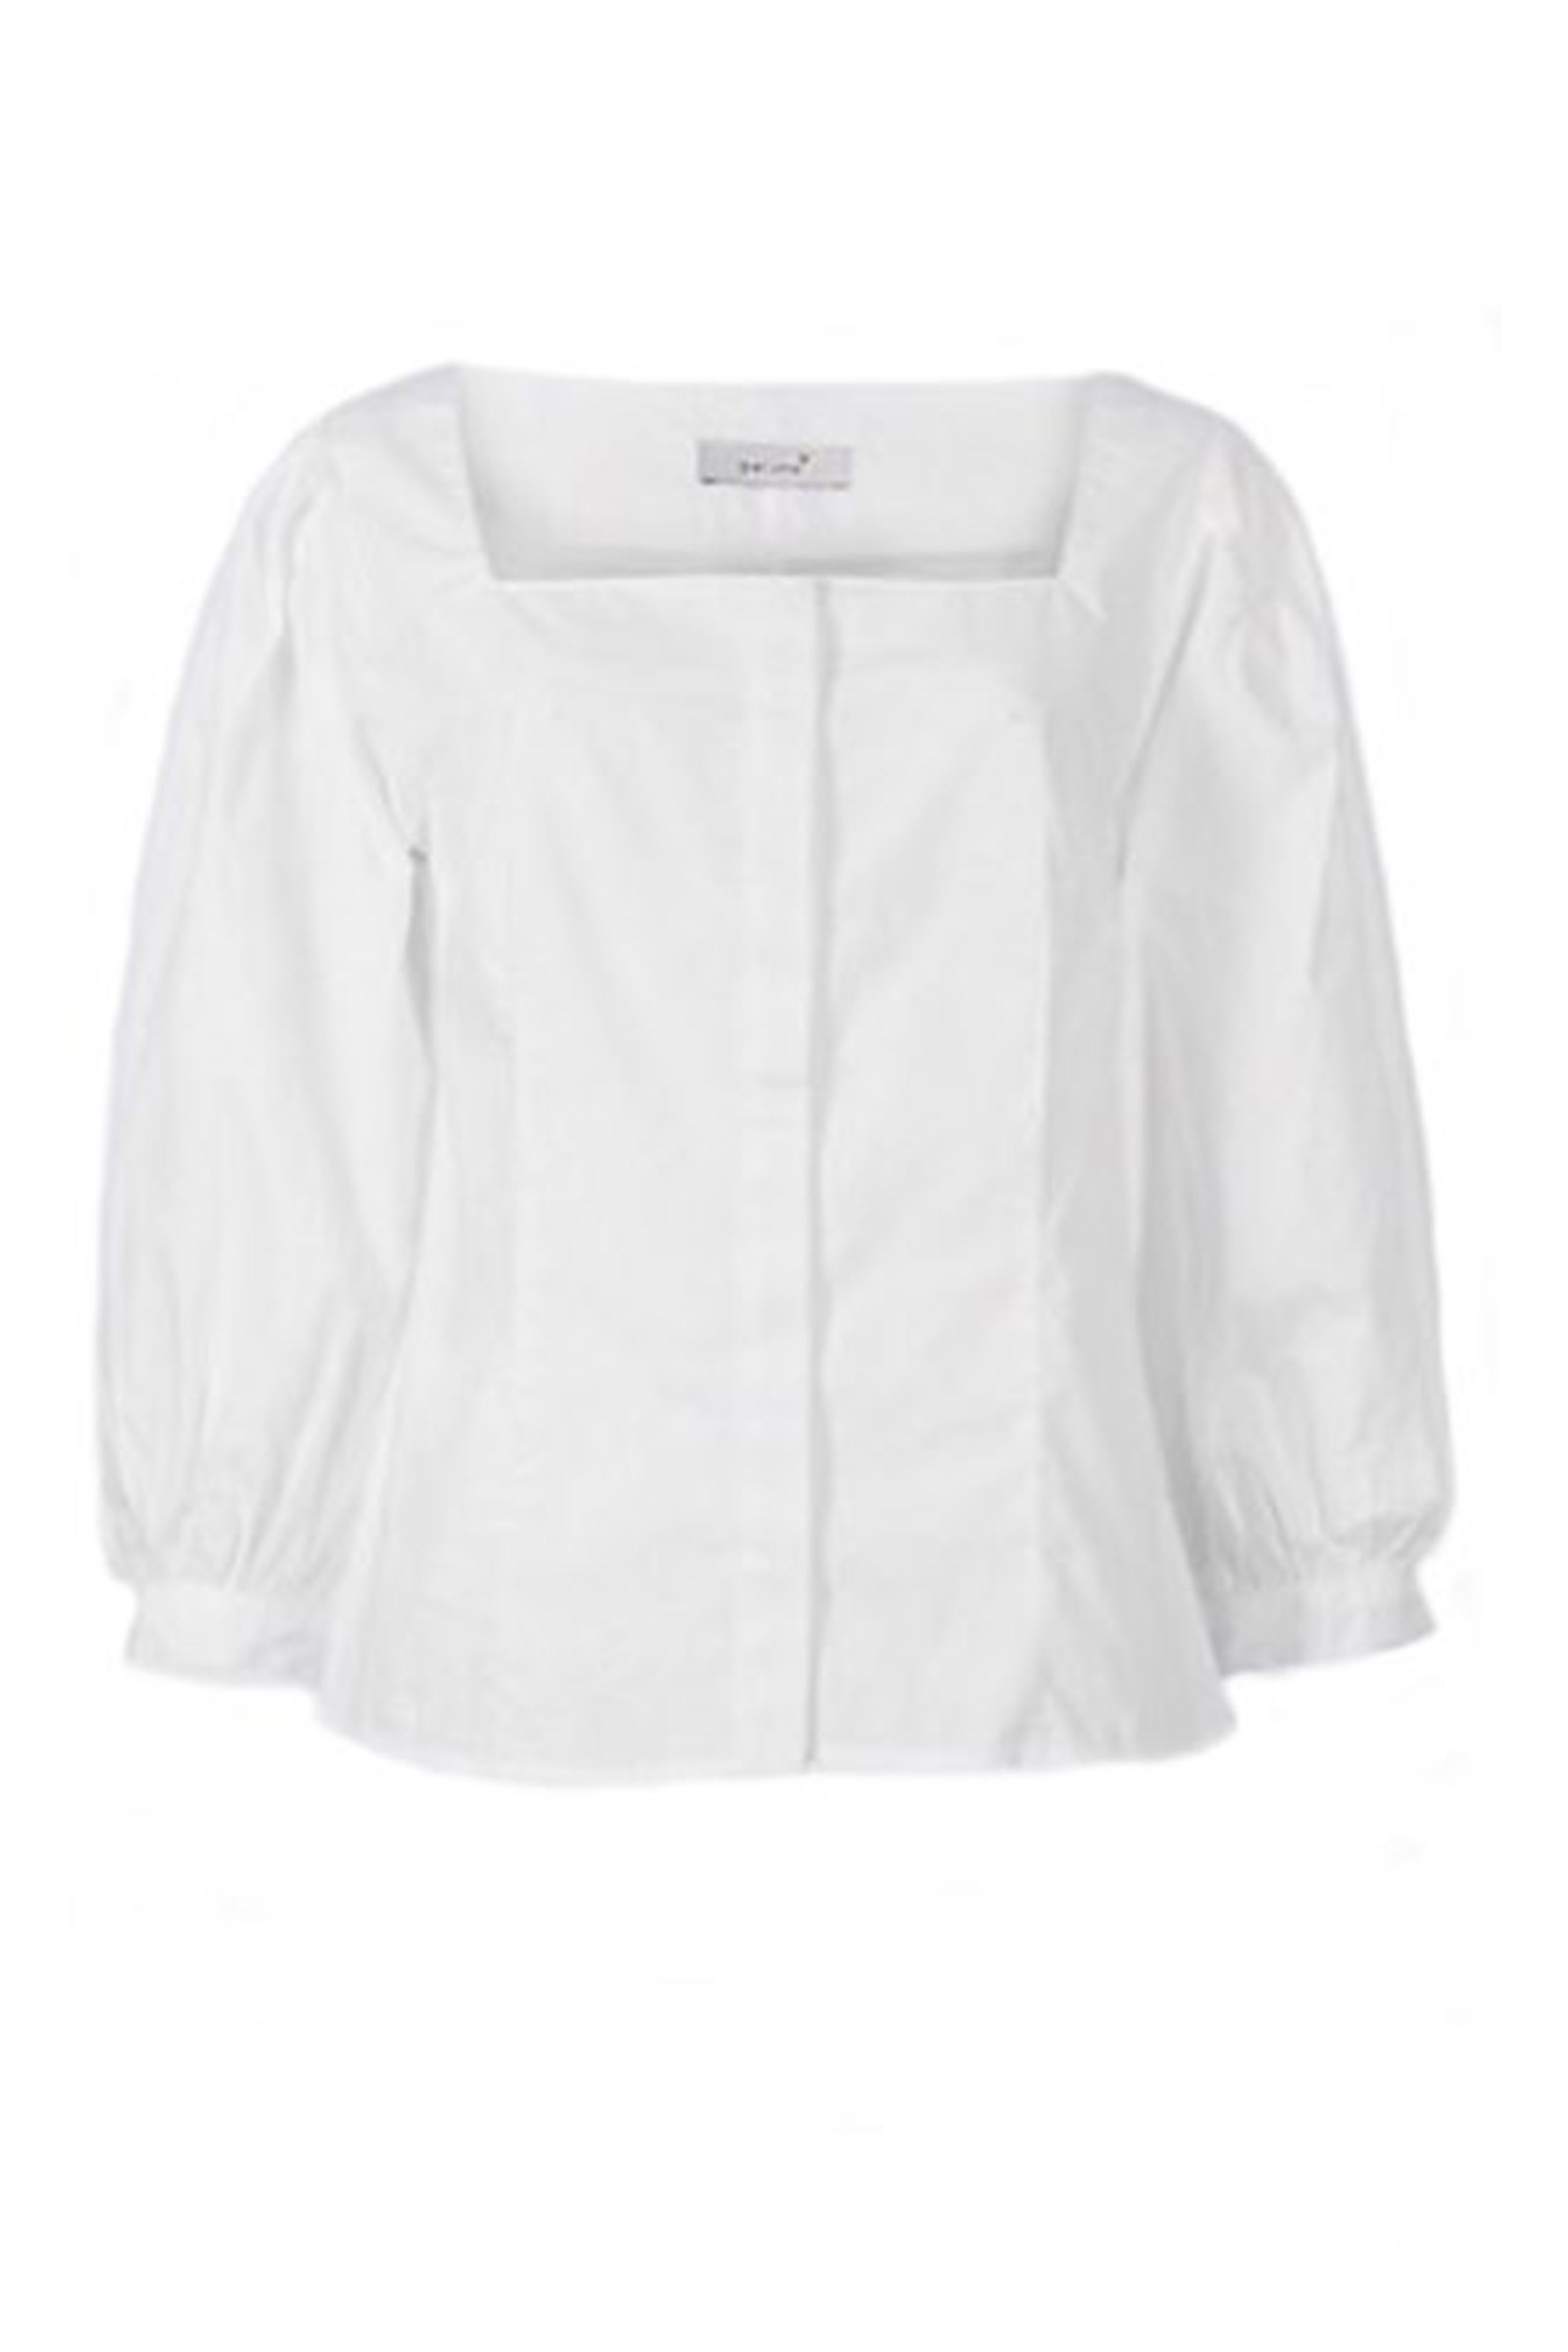 Click to Buy Marks & Spencer White Cotton Top